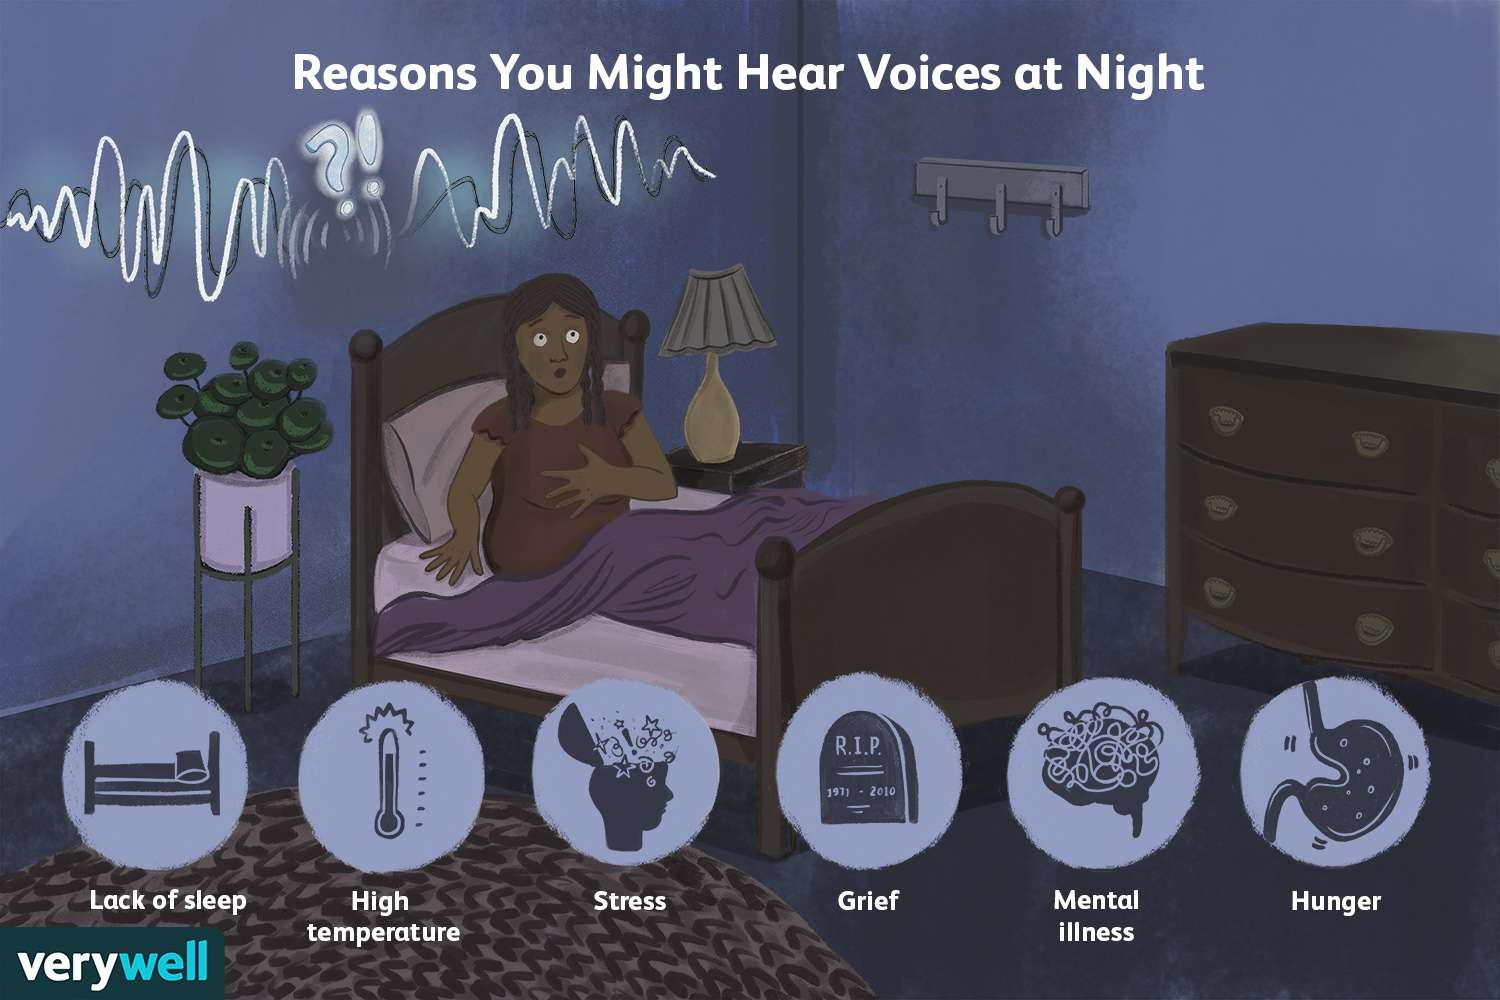 Reasons You Might Hear Voices at Night